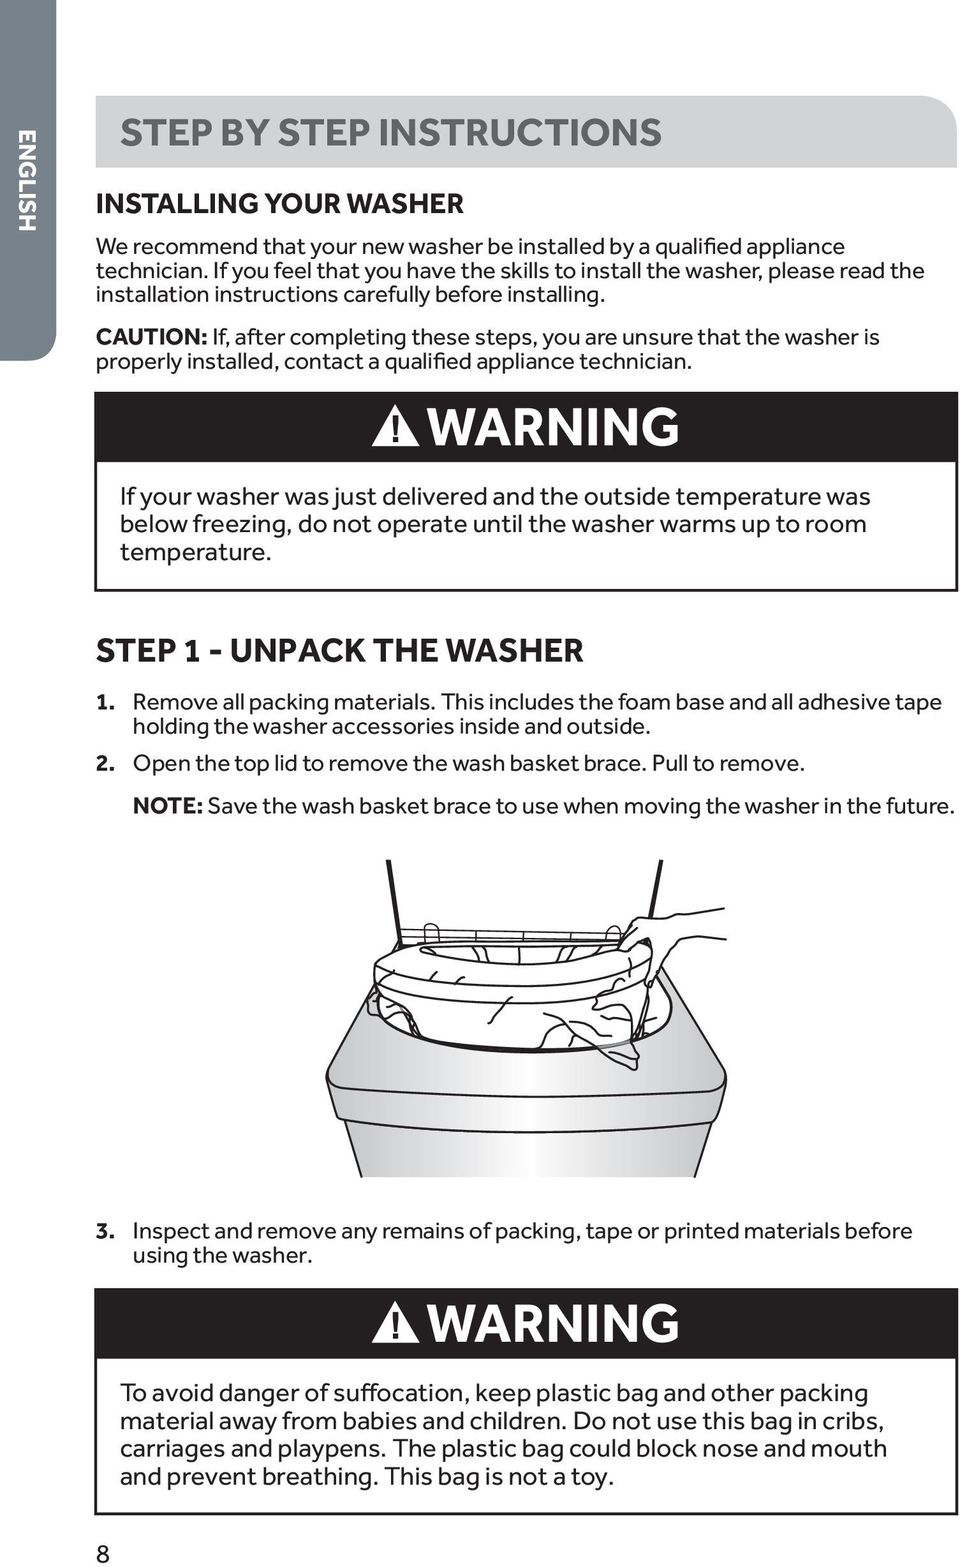 CAUTION: If, after completing these steps, you are unsure that the washer is properly installed, contact a qualified appliance technician.